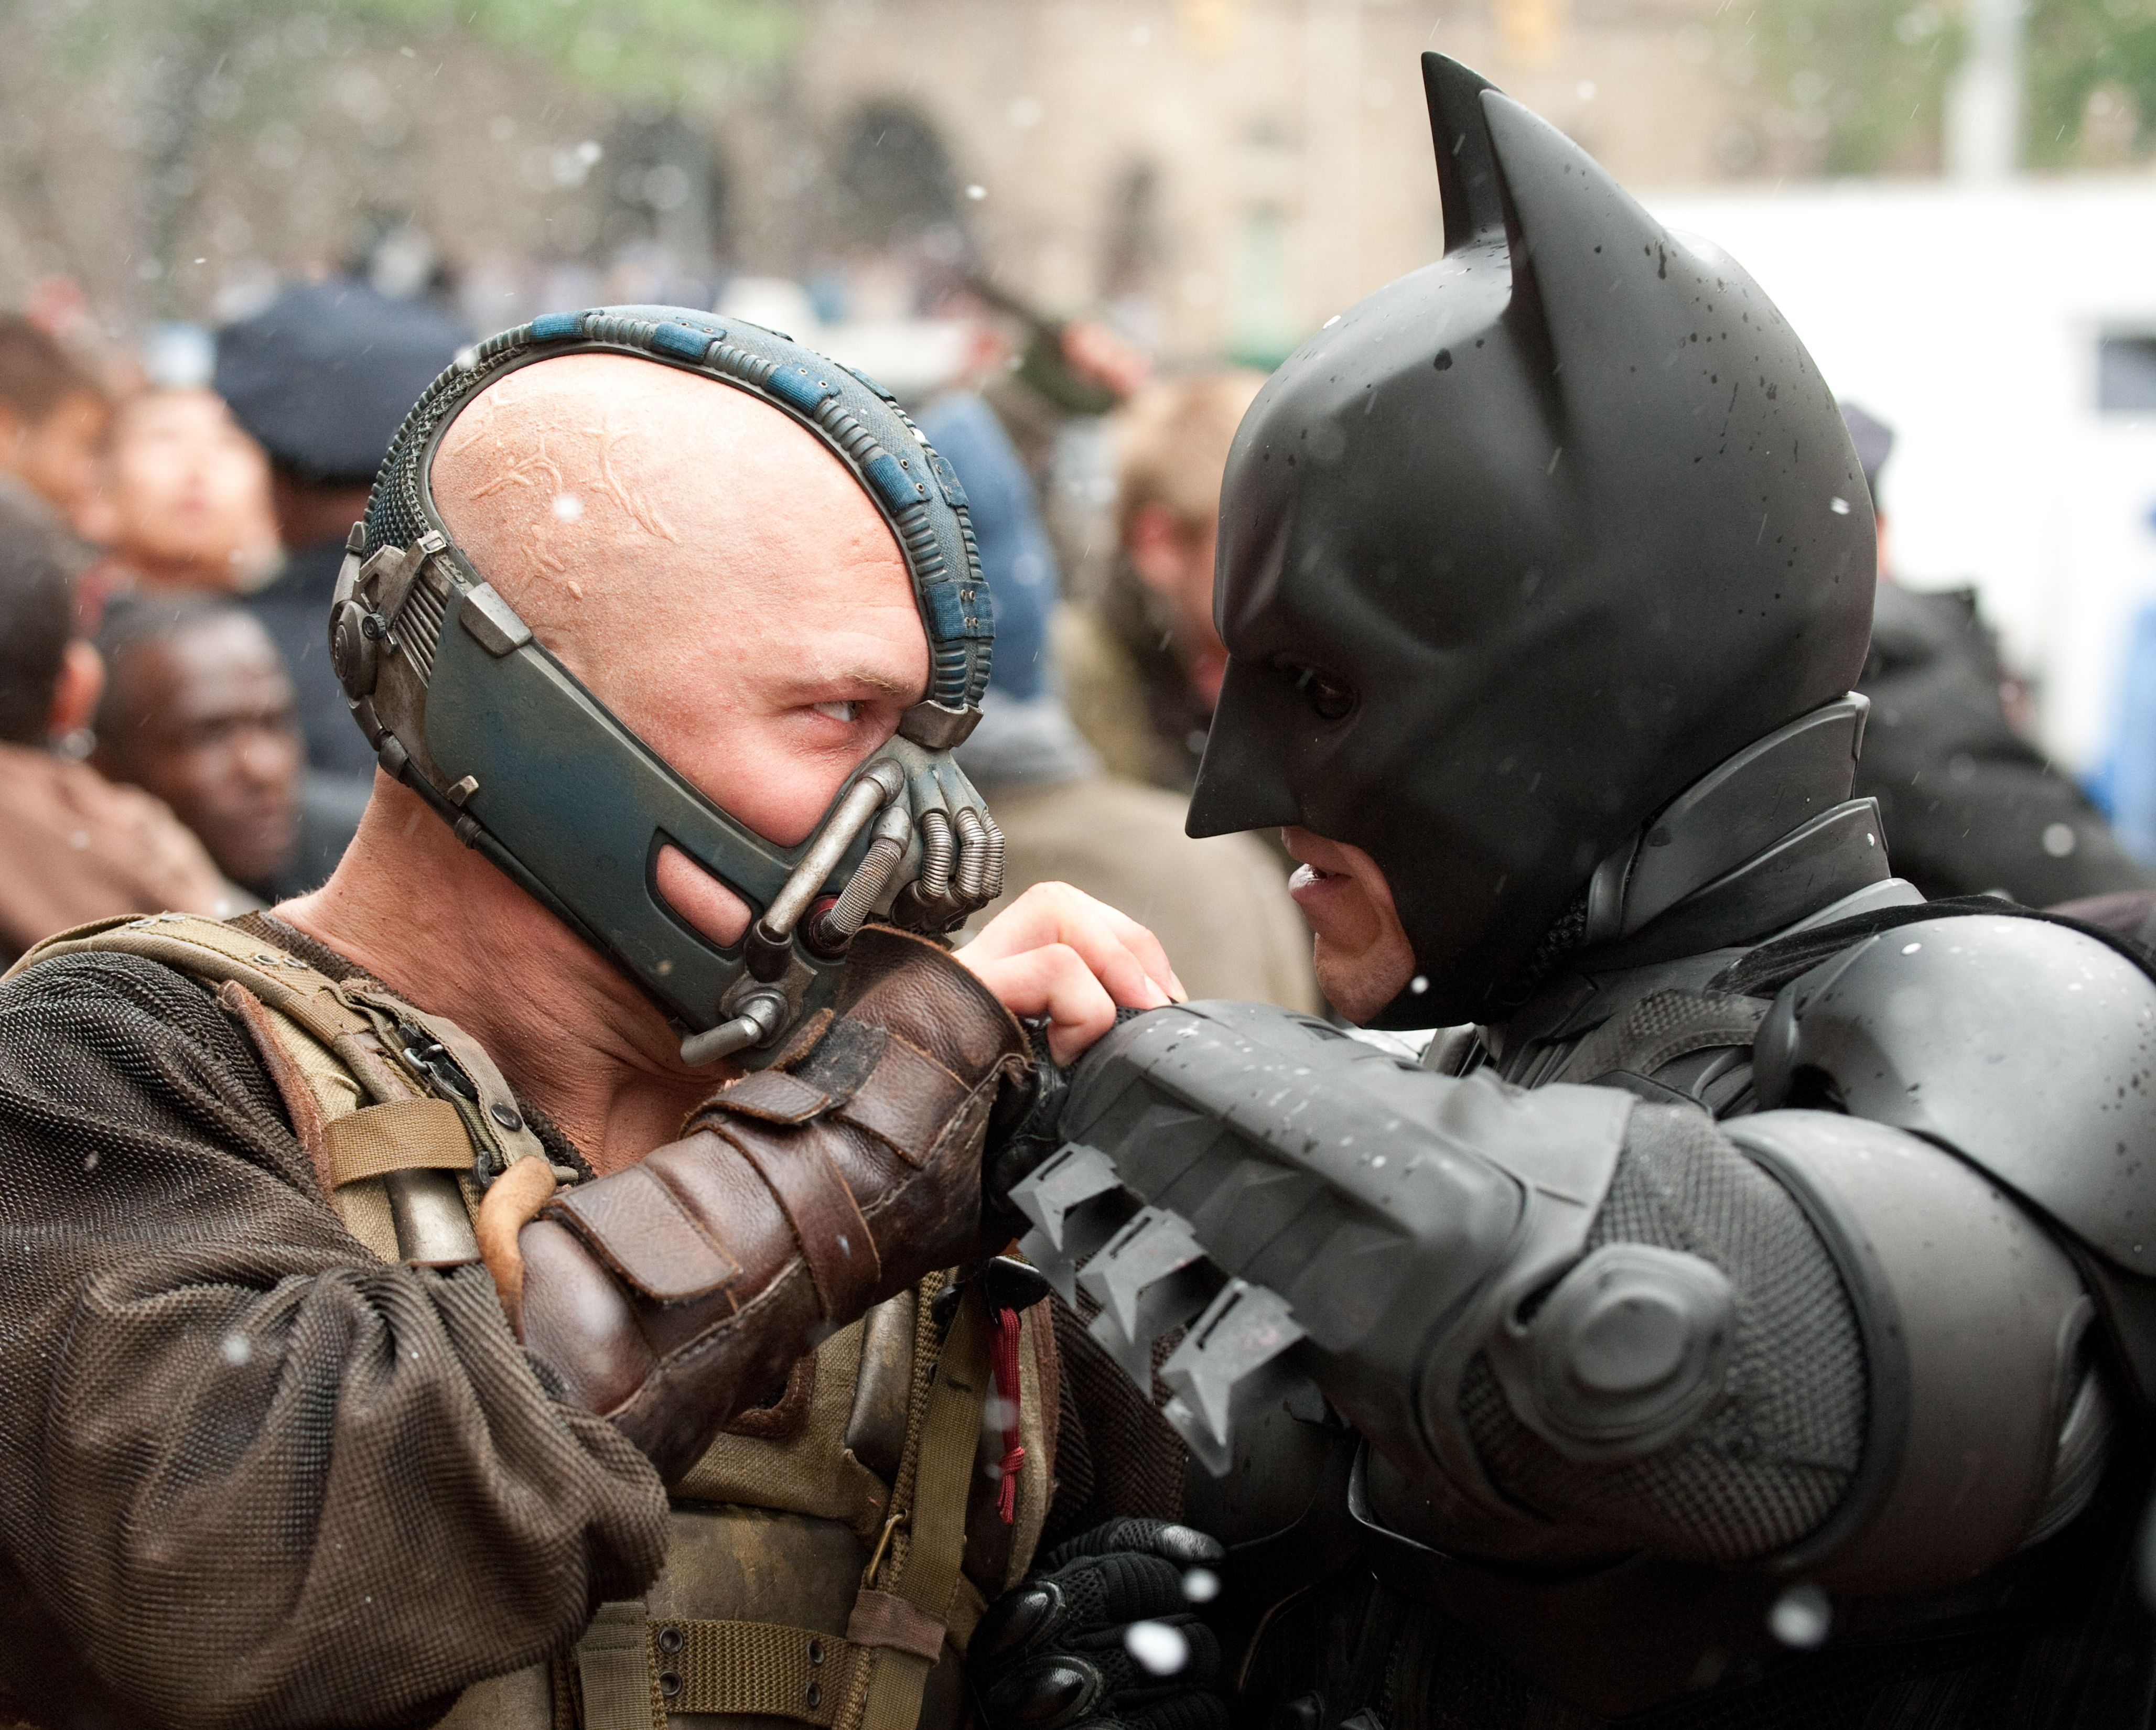 Batman and Bane one-on-one fight